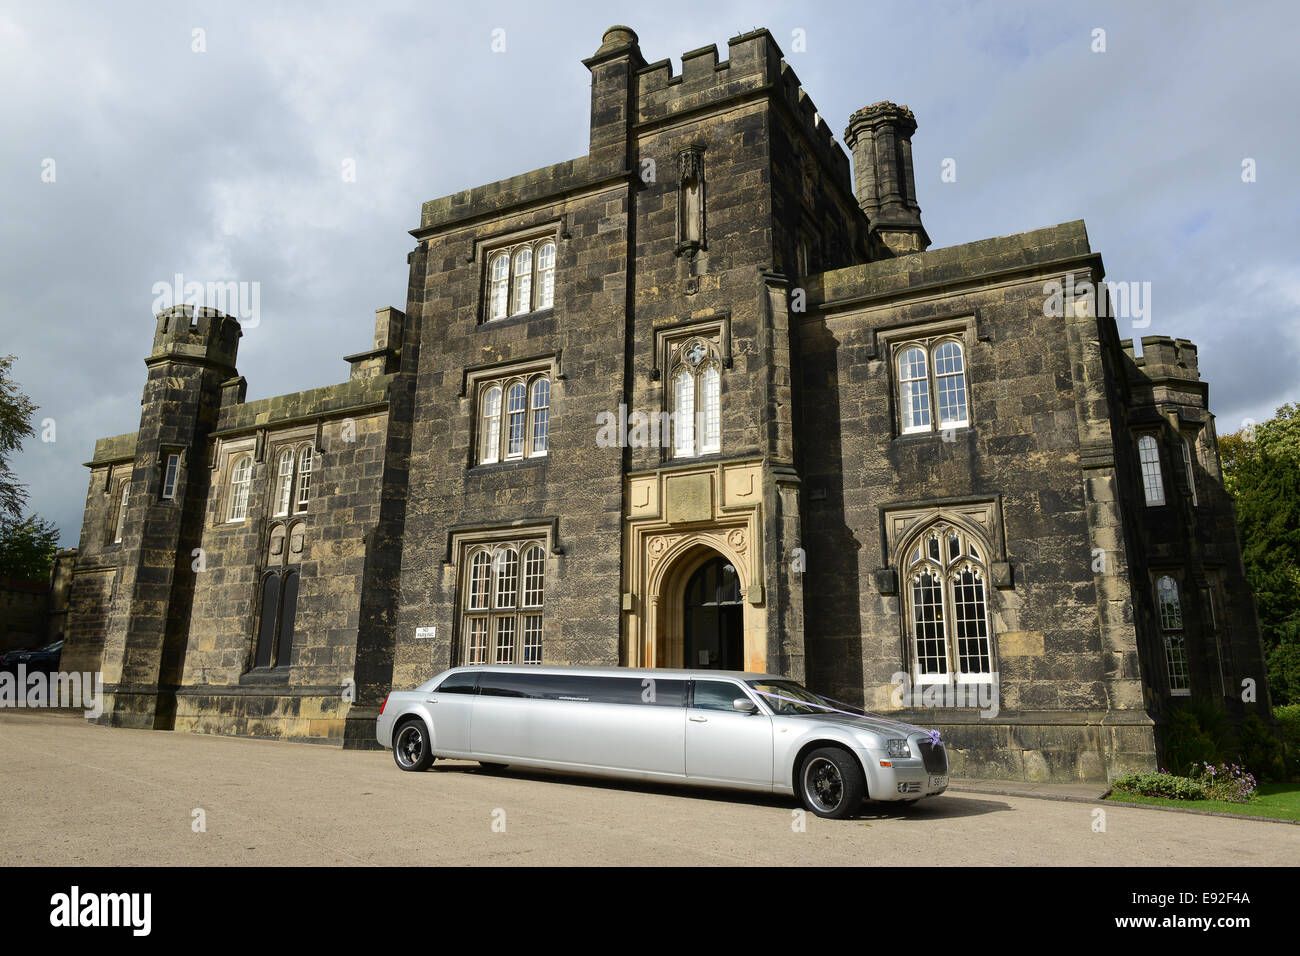 Dudley Priory Hall and registration registry office with stretched limo limousine West Midlands Uk - Stock Image